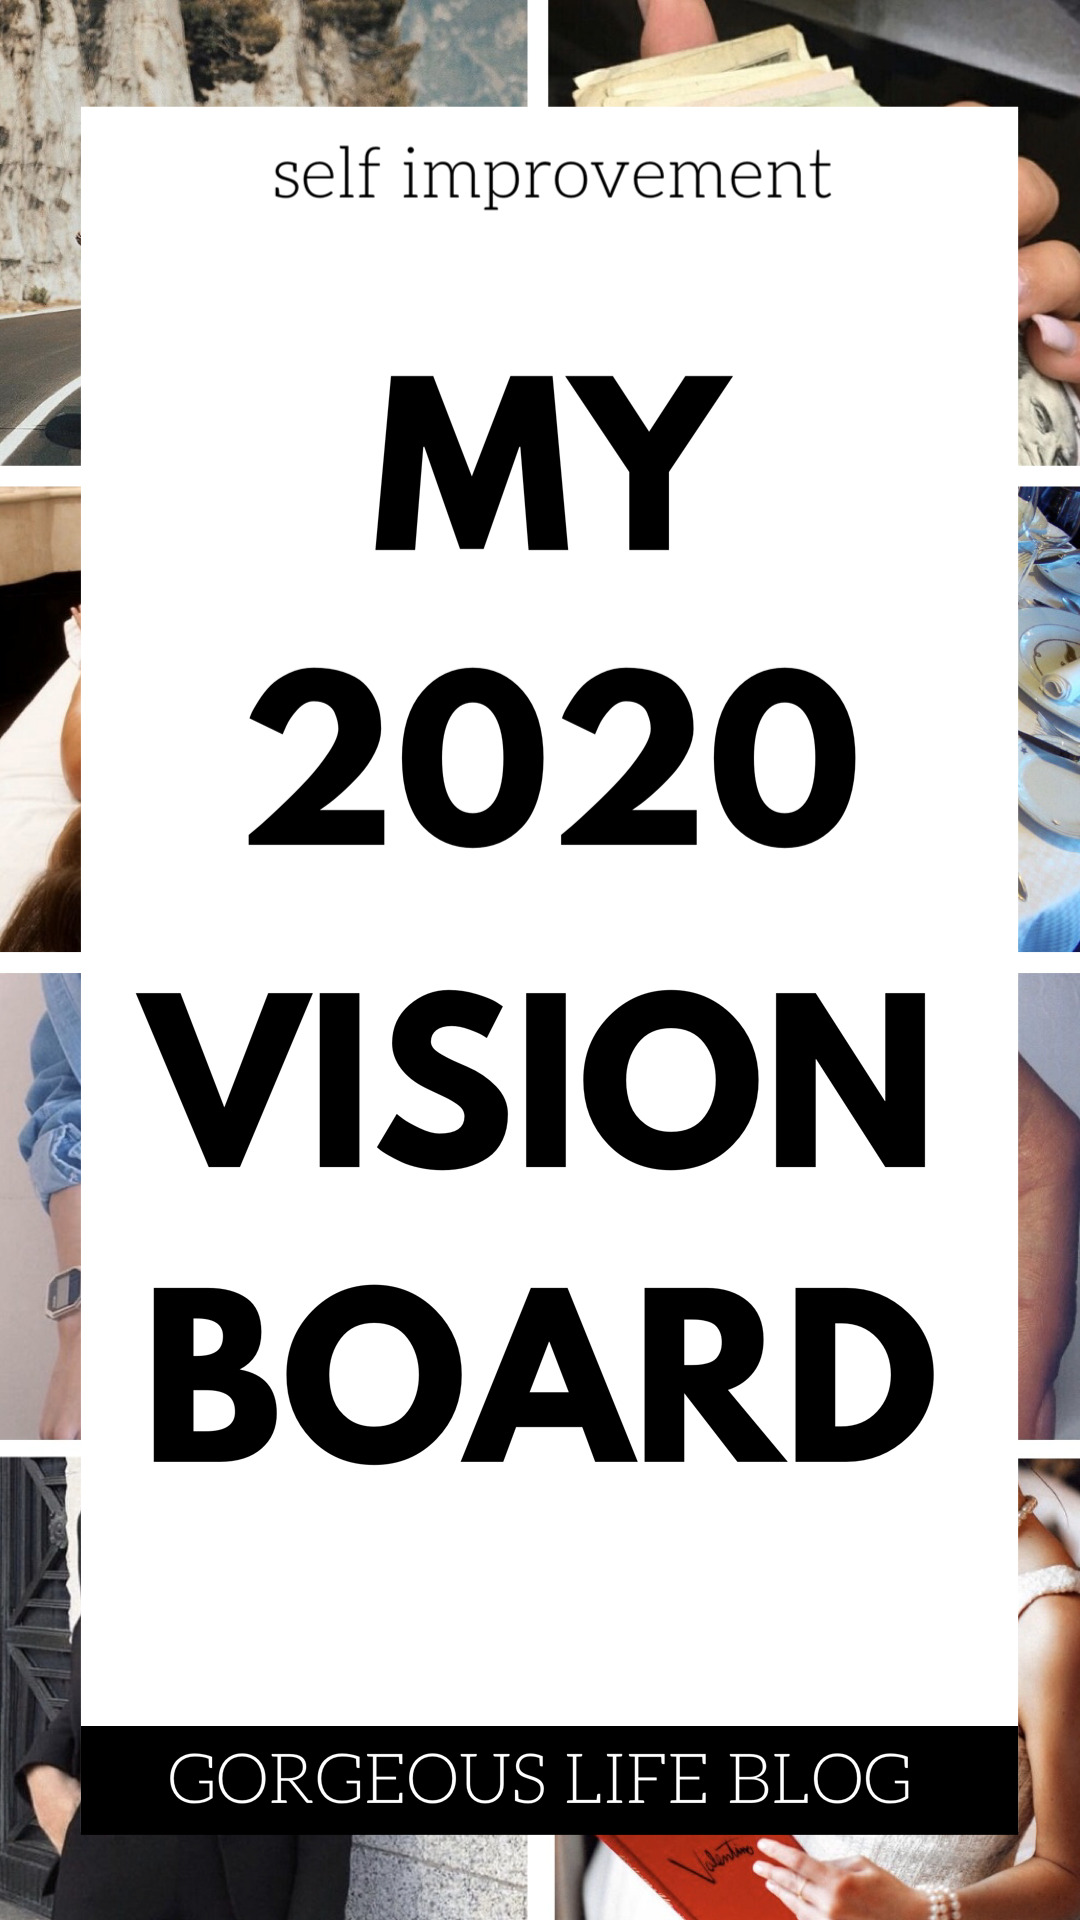 My 2020 Vision Board